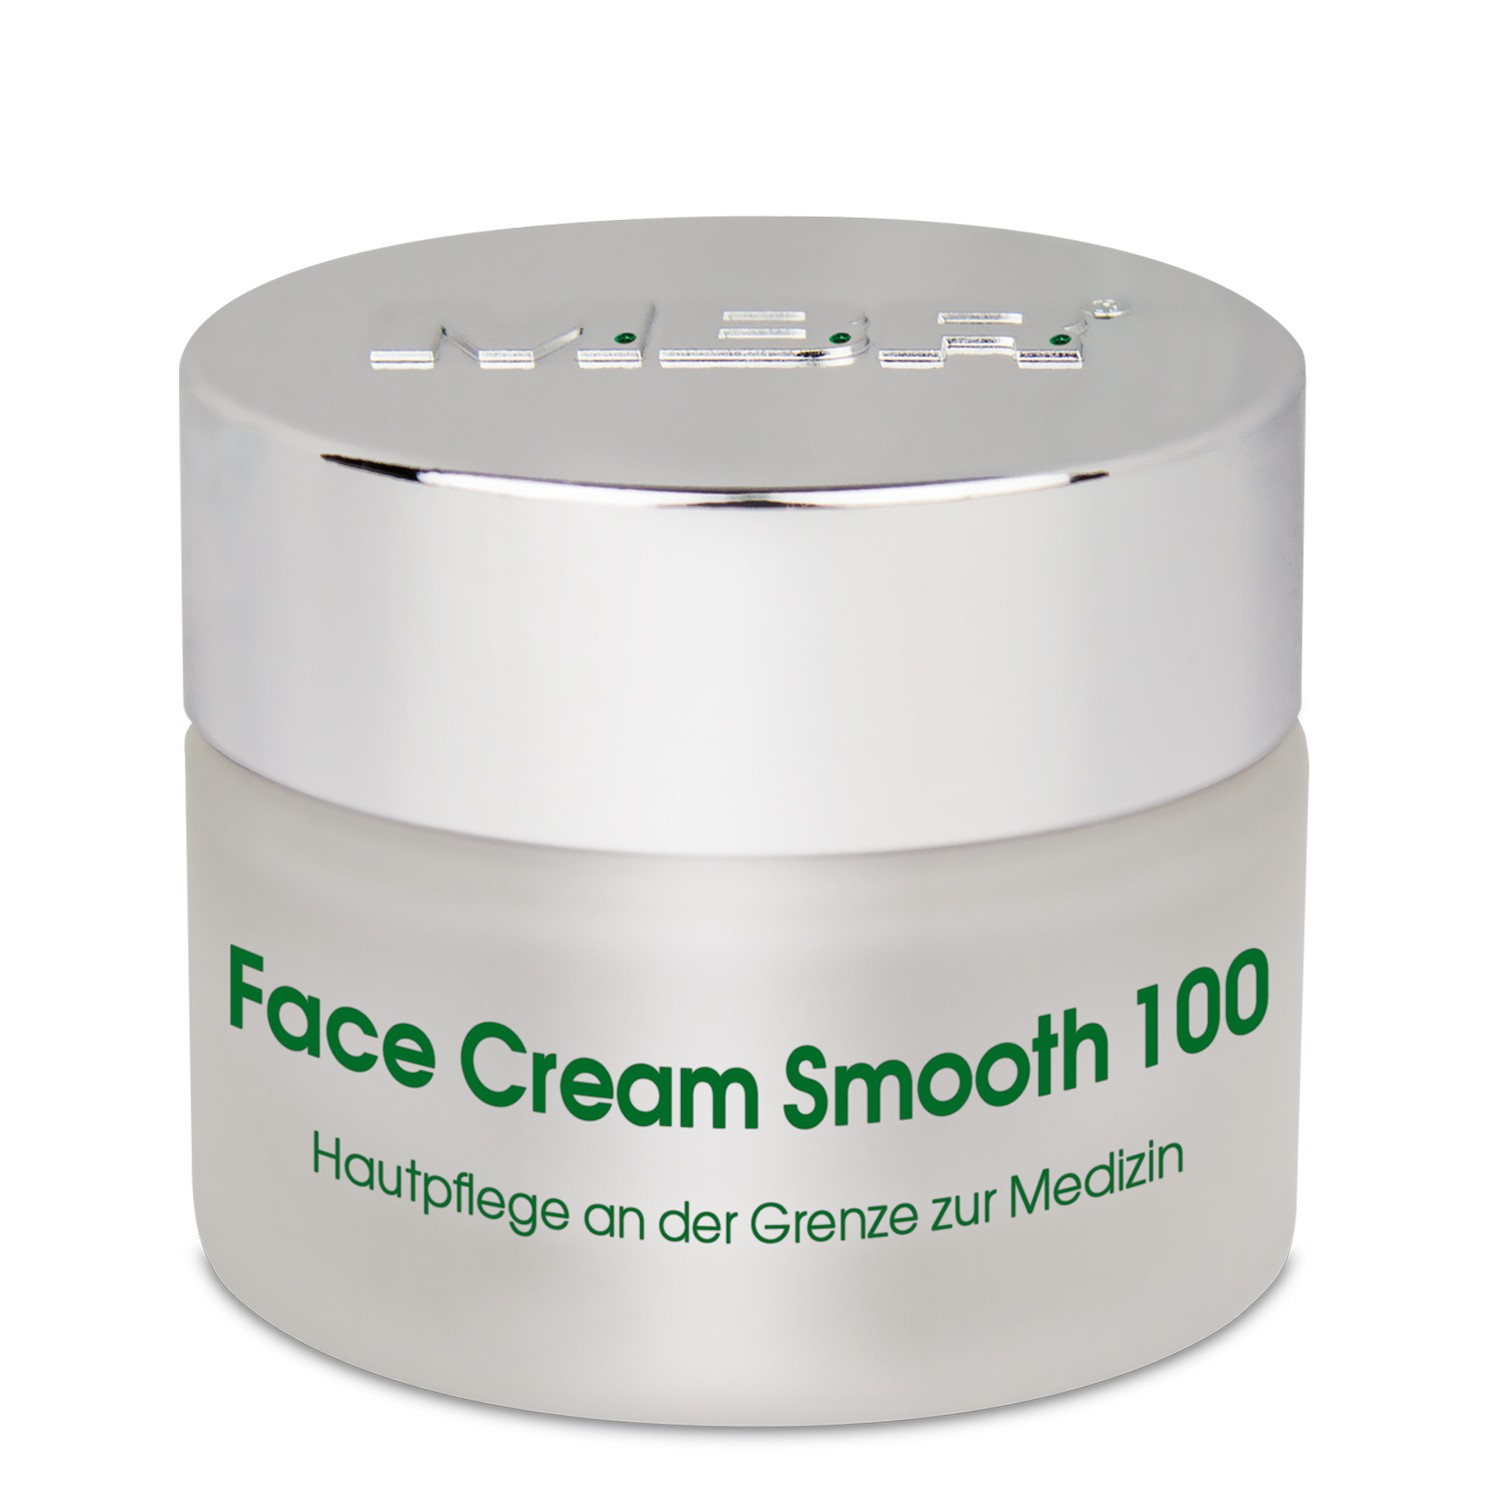 Крем Face Cream Smooth 100 MBR Германия 5 мл(р) — фото №1